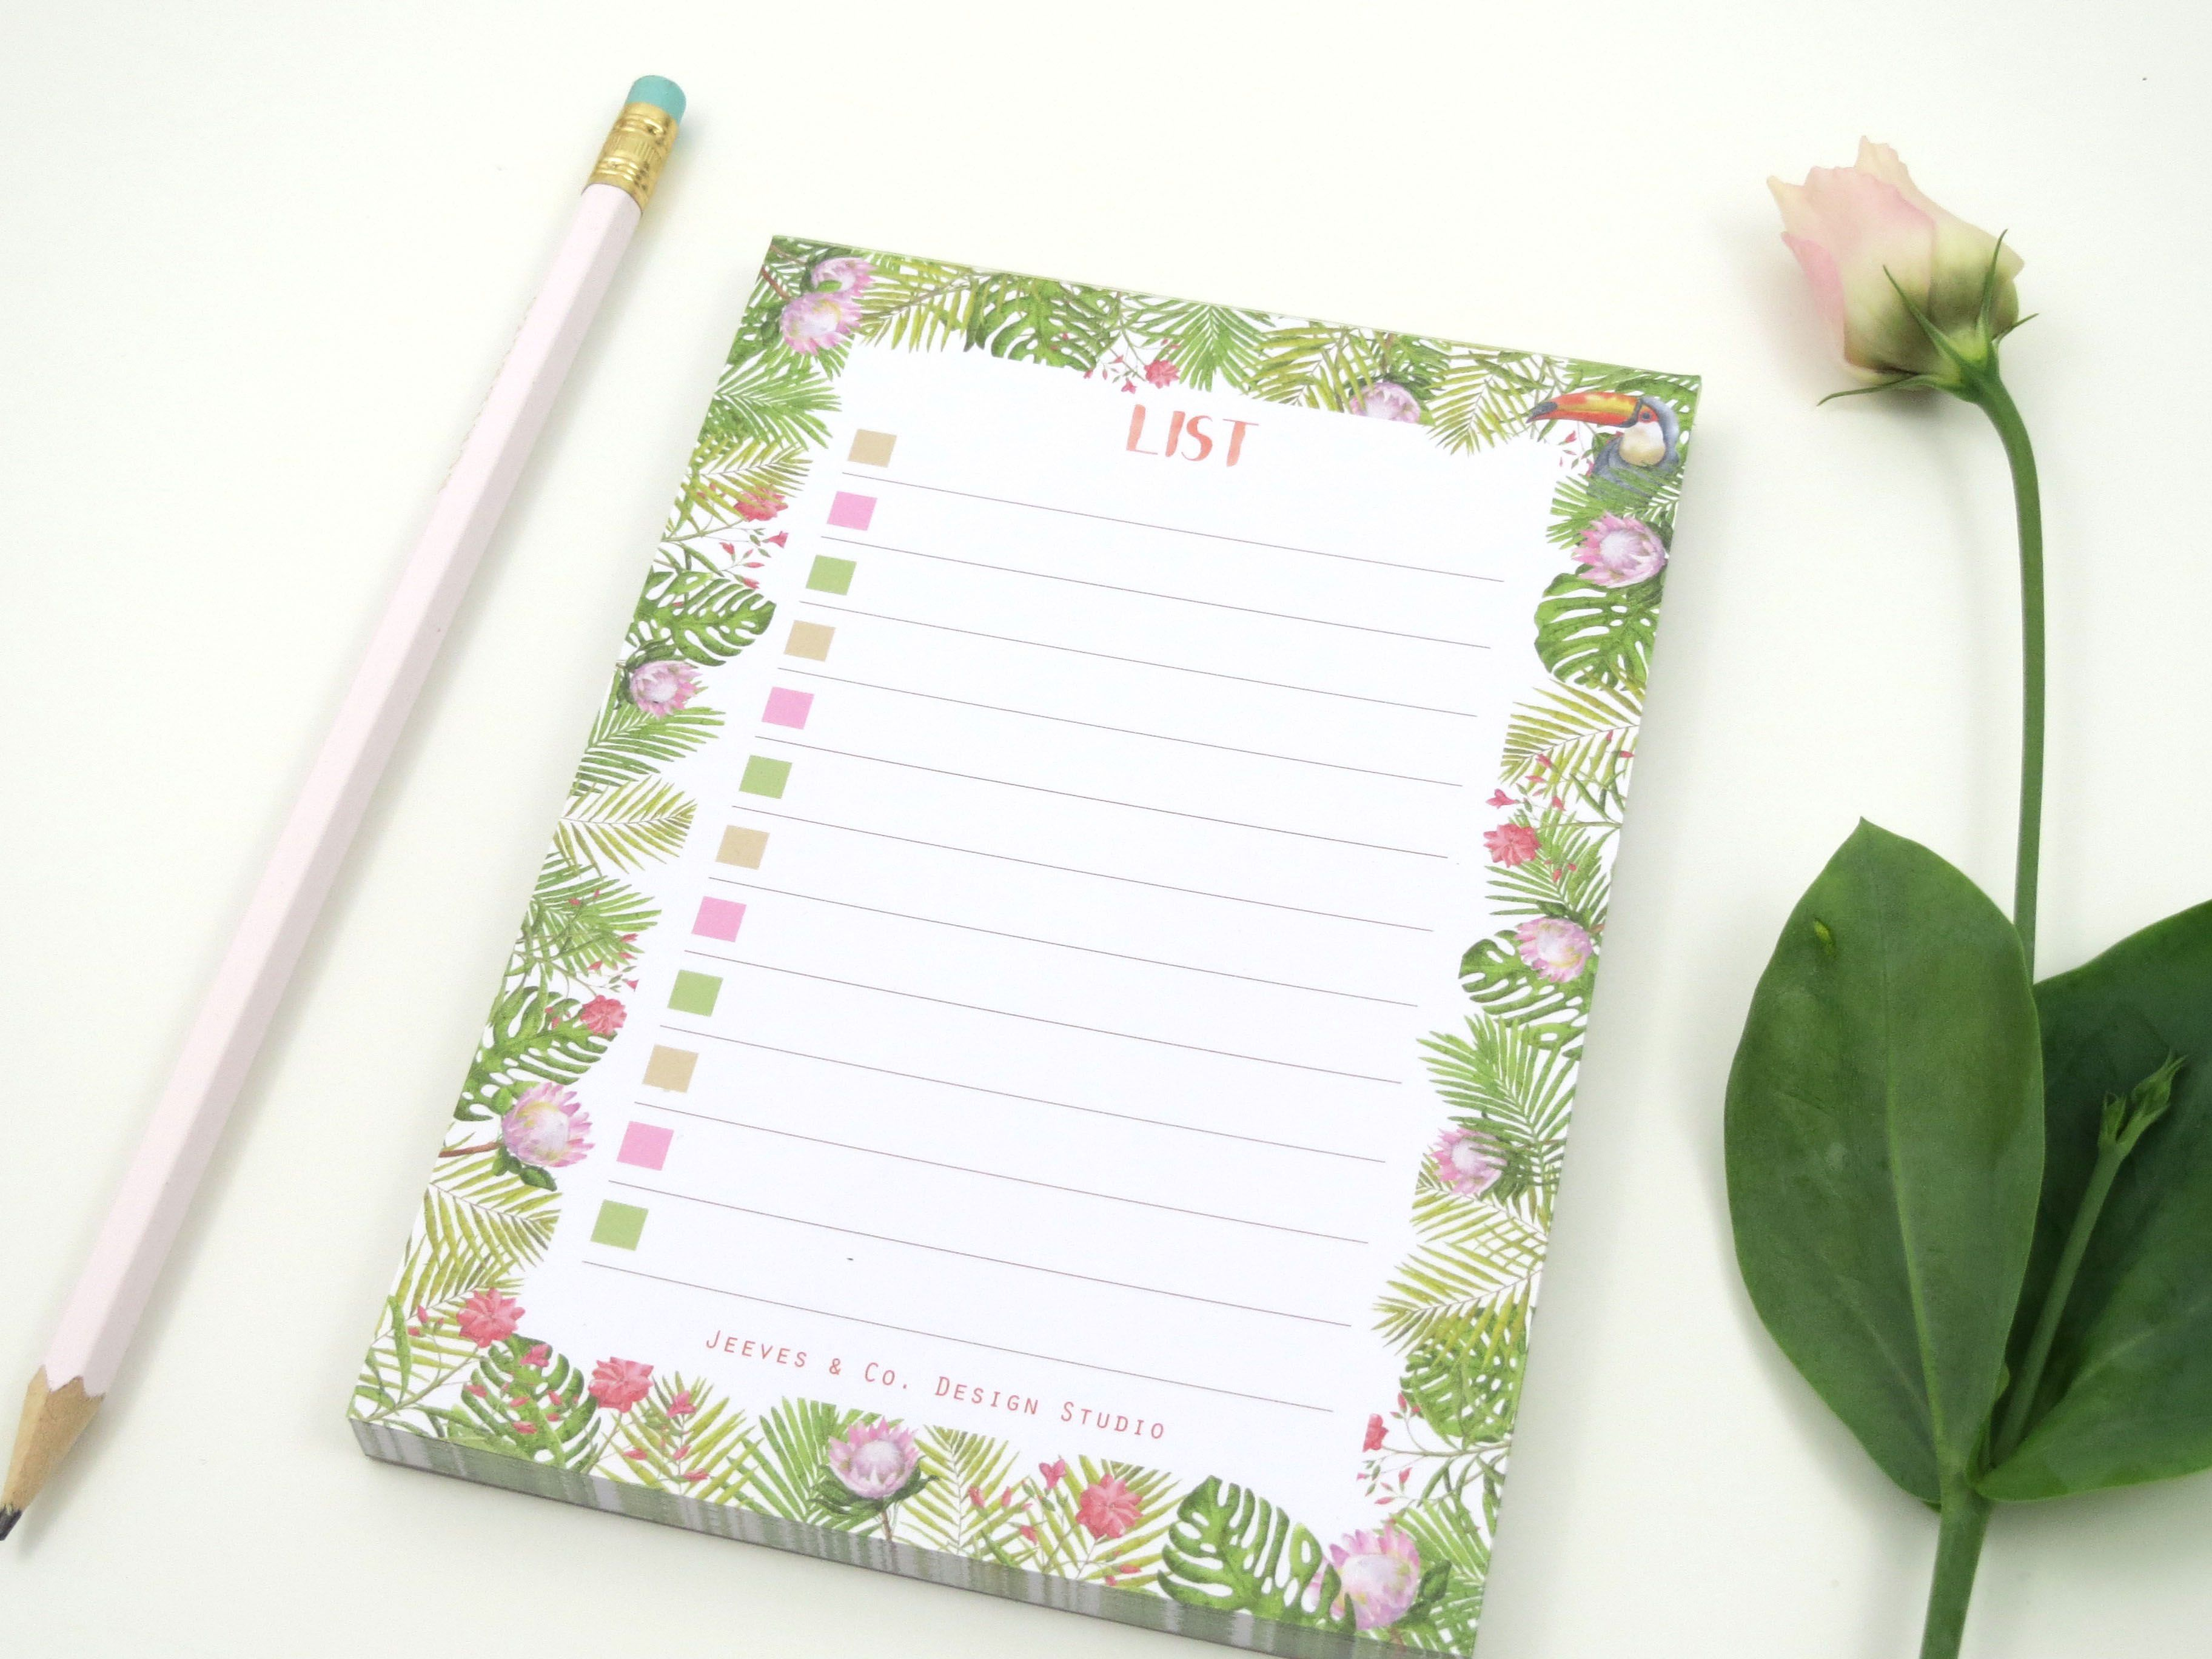 List pad from Jeeves u Co Design Studious Jungle range Designed in